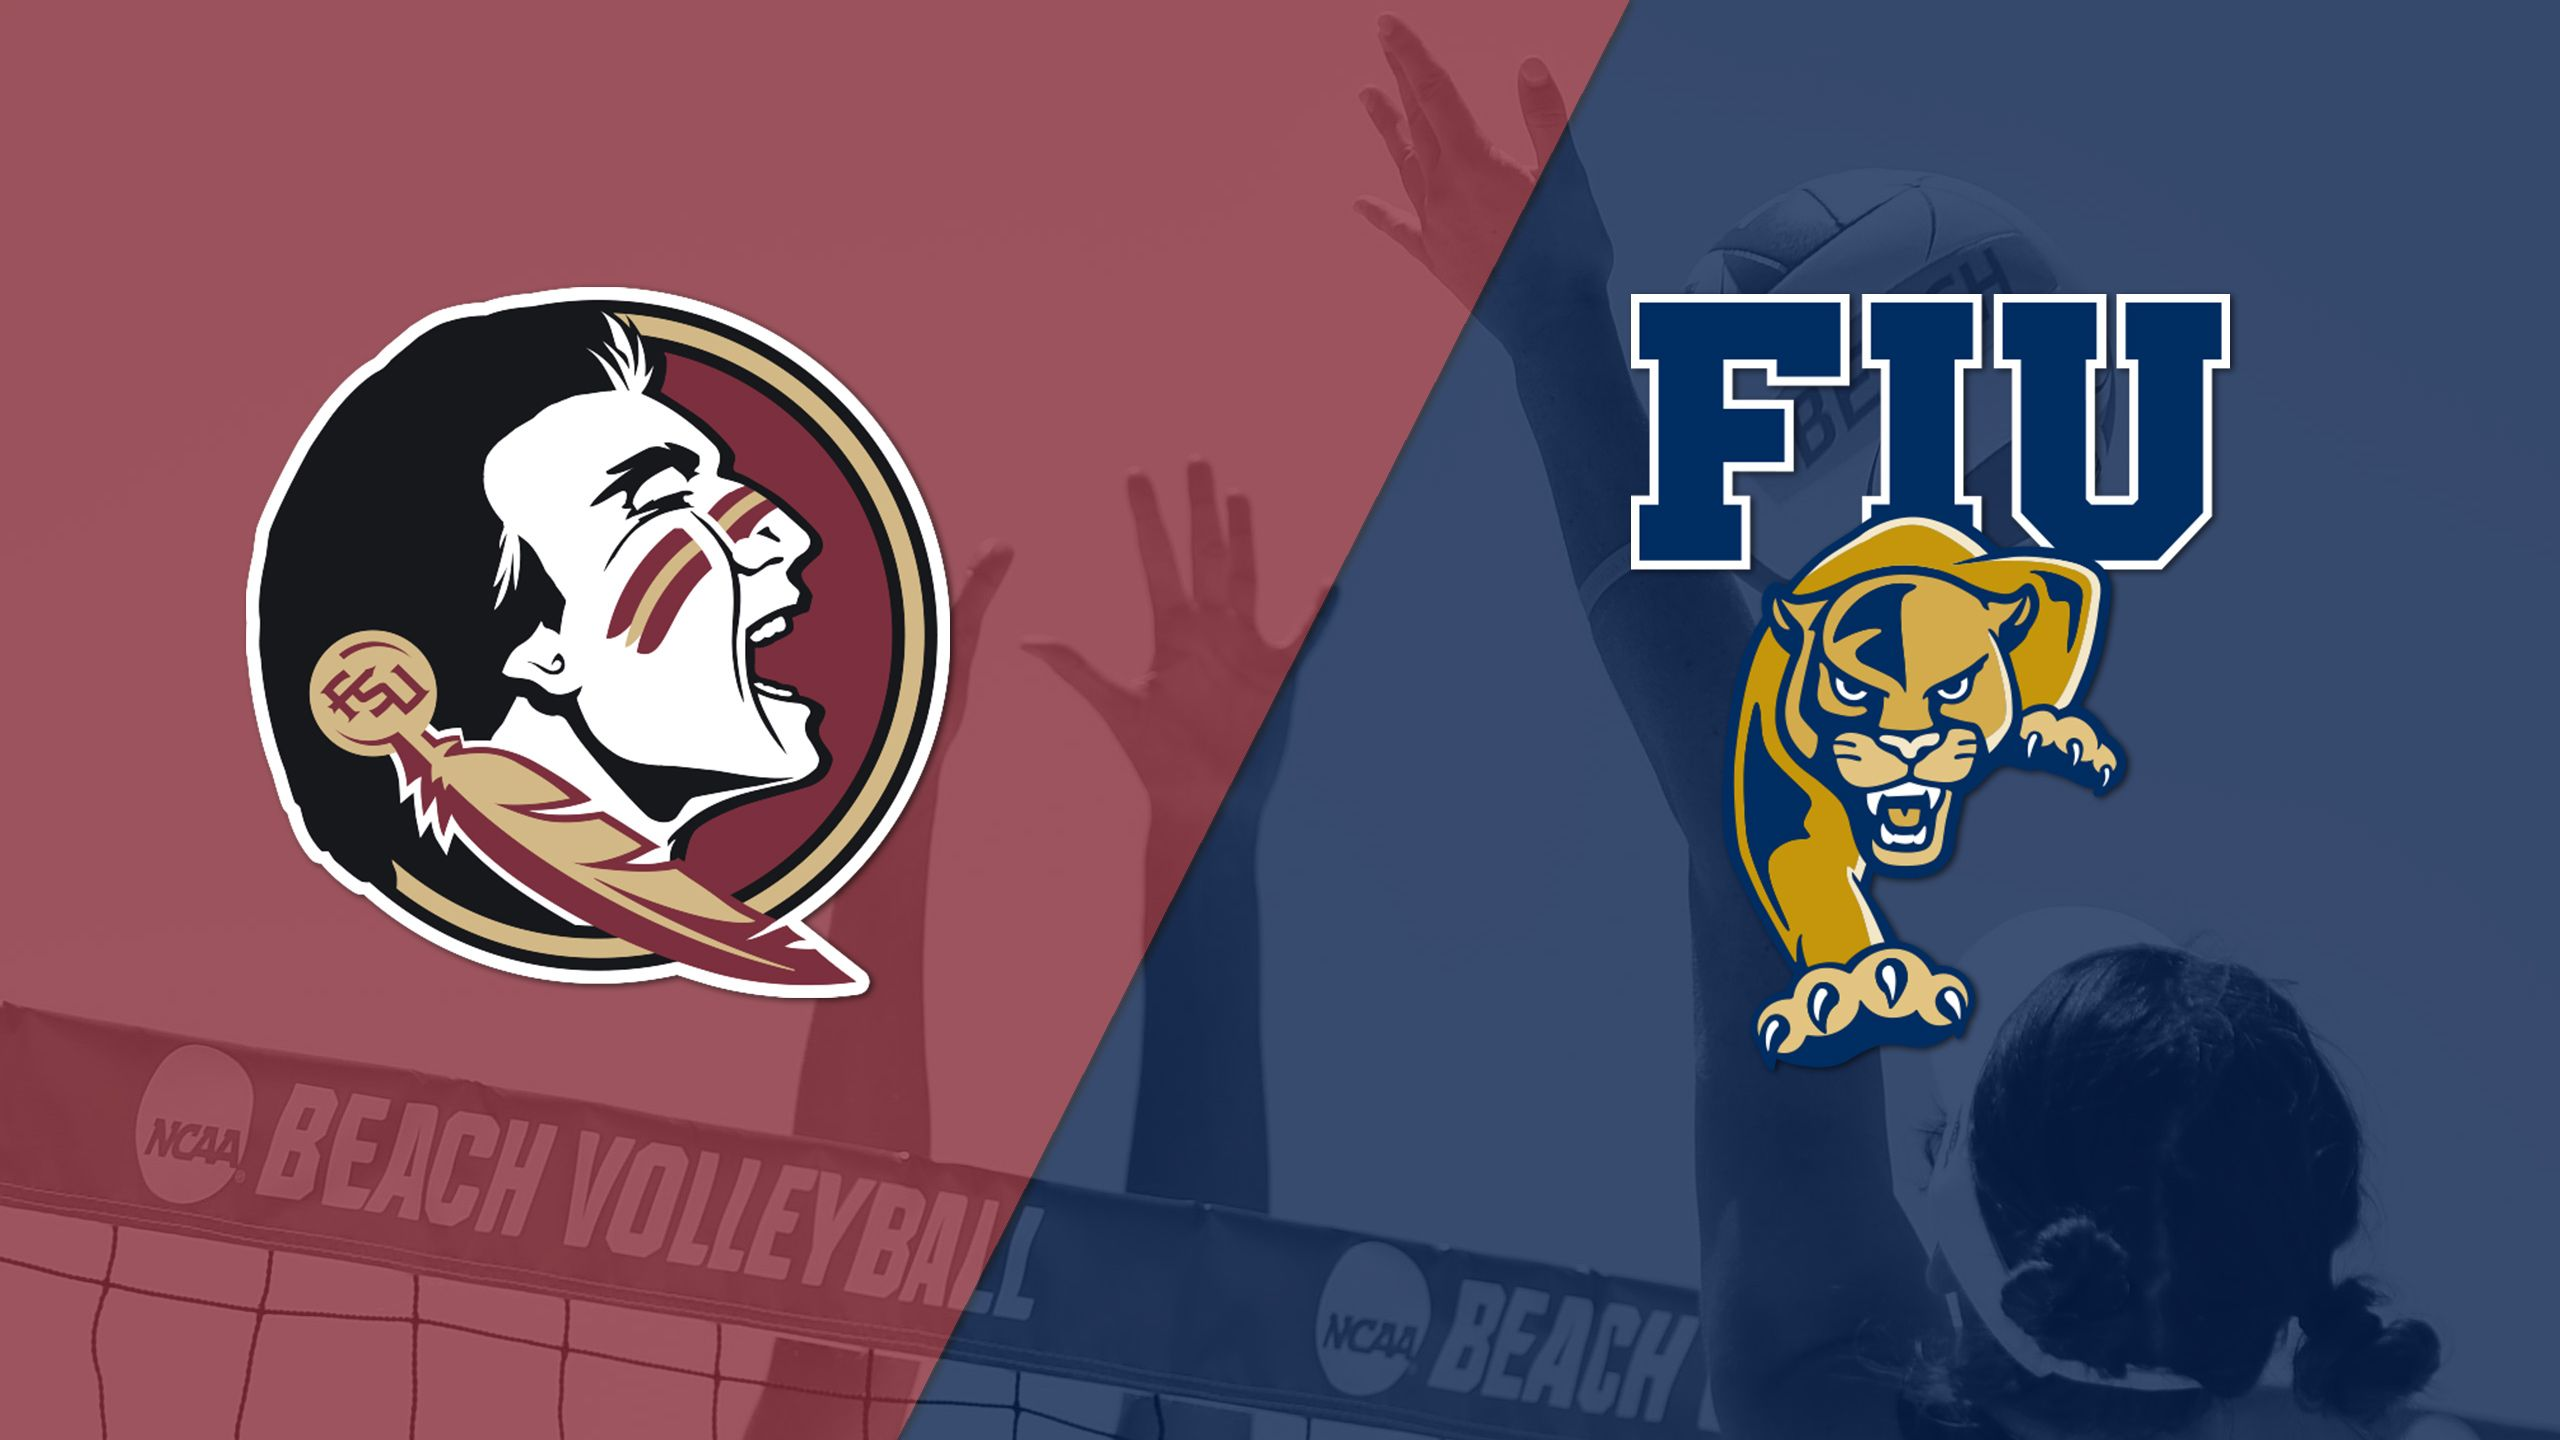 Florida State vs. Florida International (Final) (CCSA Beach Volleyball Championship)